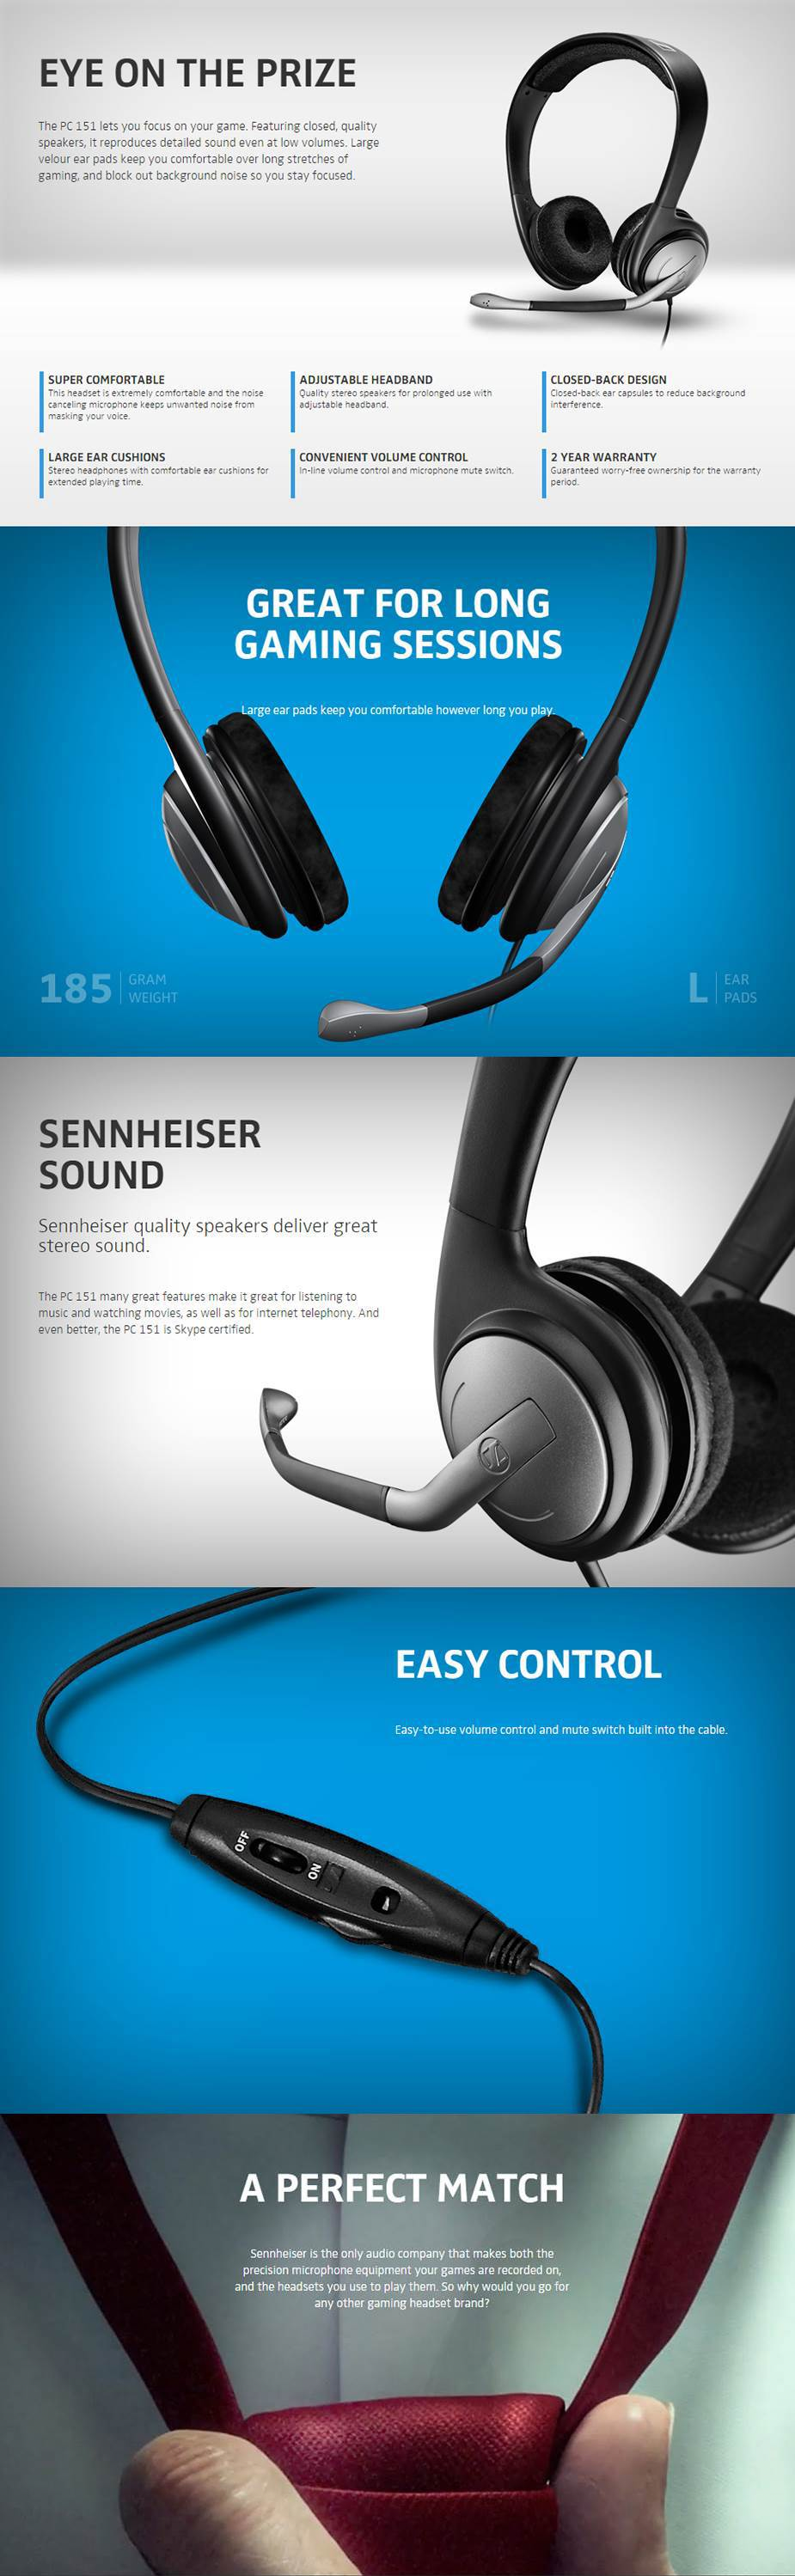 Sennheiser PC 151 Gaming Headset